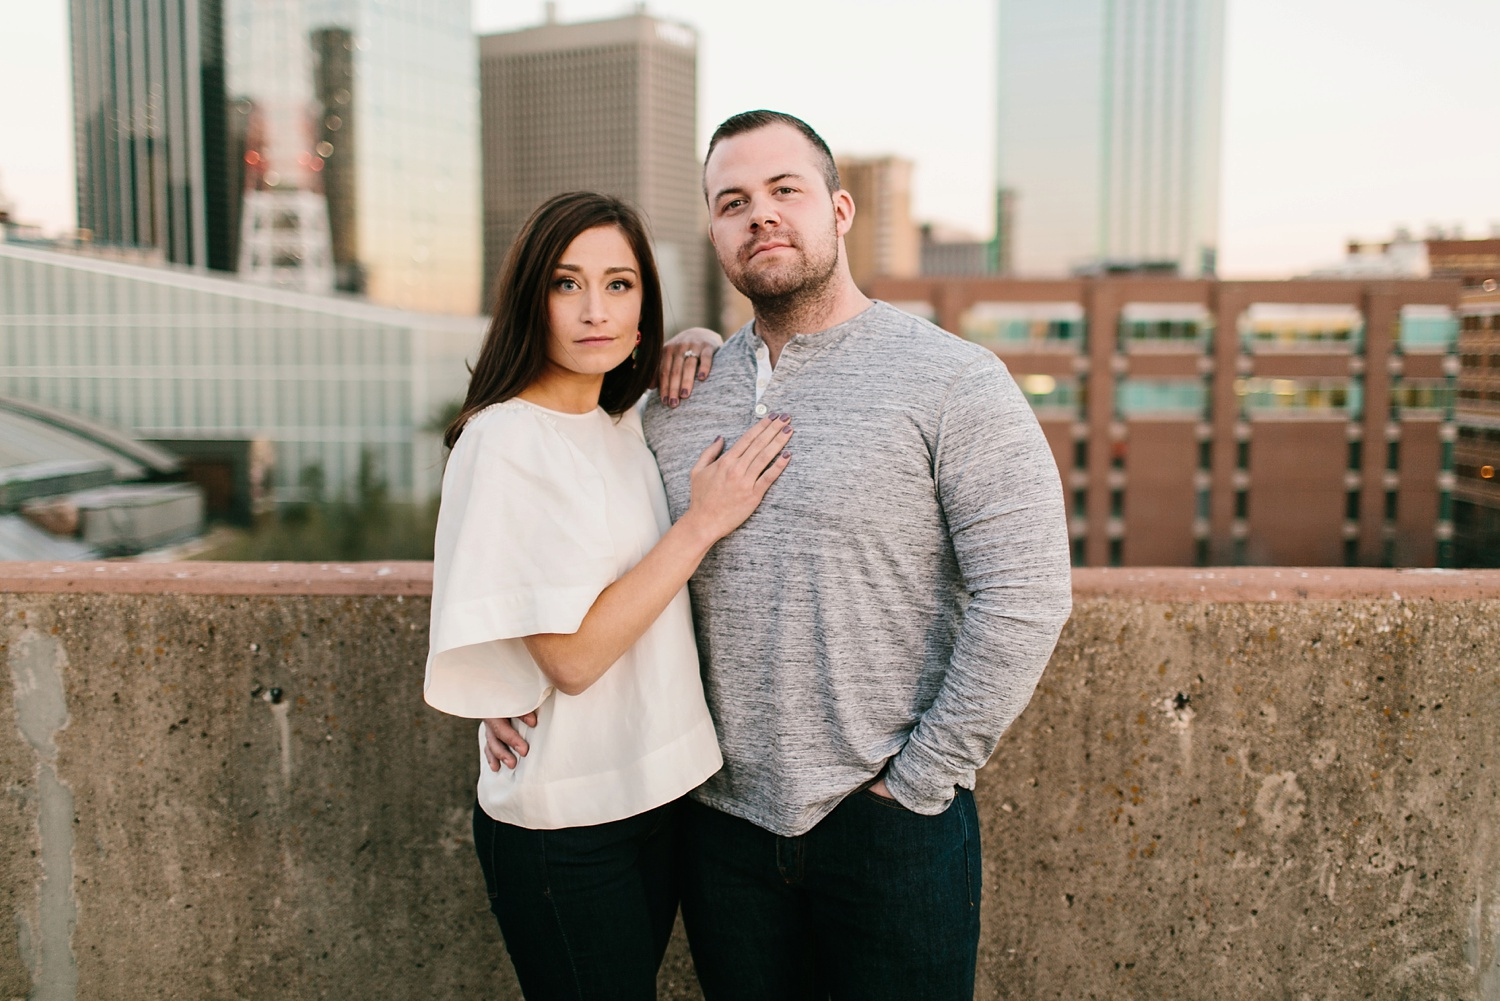 Kadee + Tyler _ a forest and city skyline engagement shoot in Dallas by North Texas Wedding Photographer Rachel Meagan Photography_54